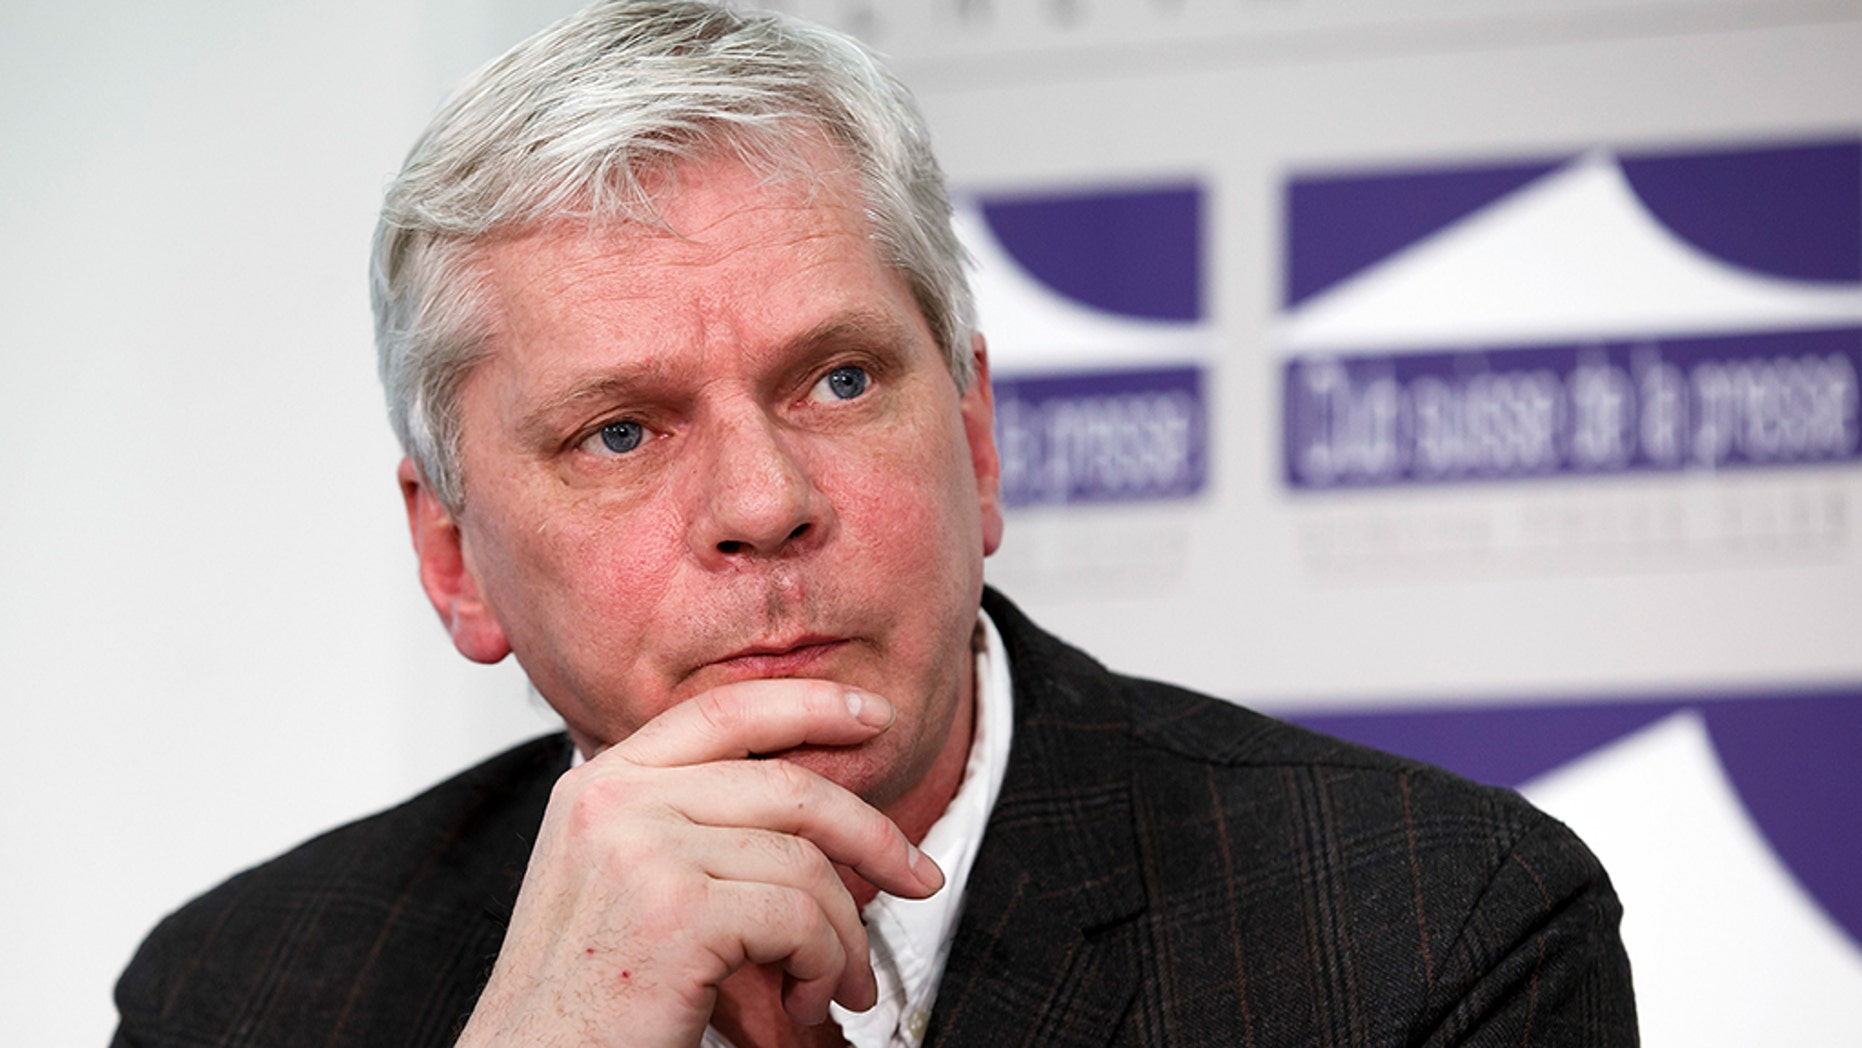 WikiLeaks on Wednesday named one-time spokesman Kristinn Hrafnsson as its new editor-in-chief, replacing Julian Assange.